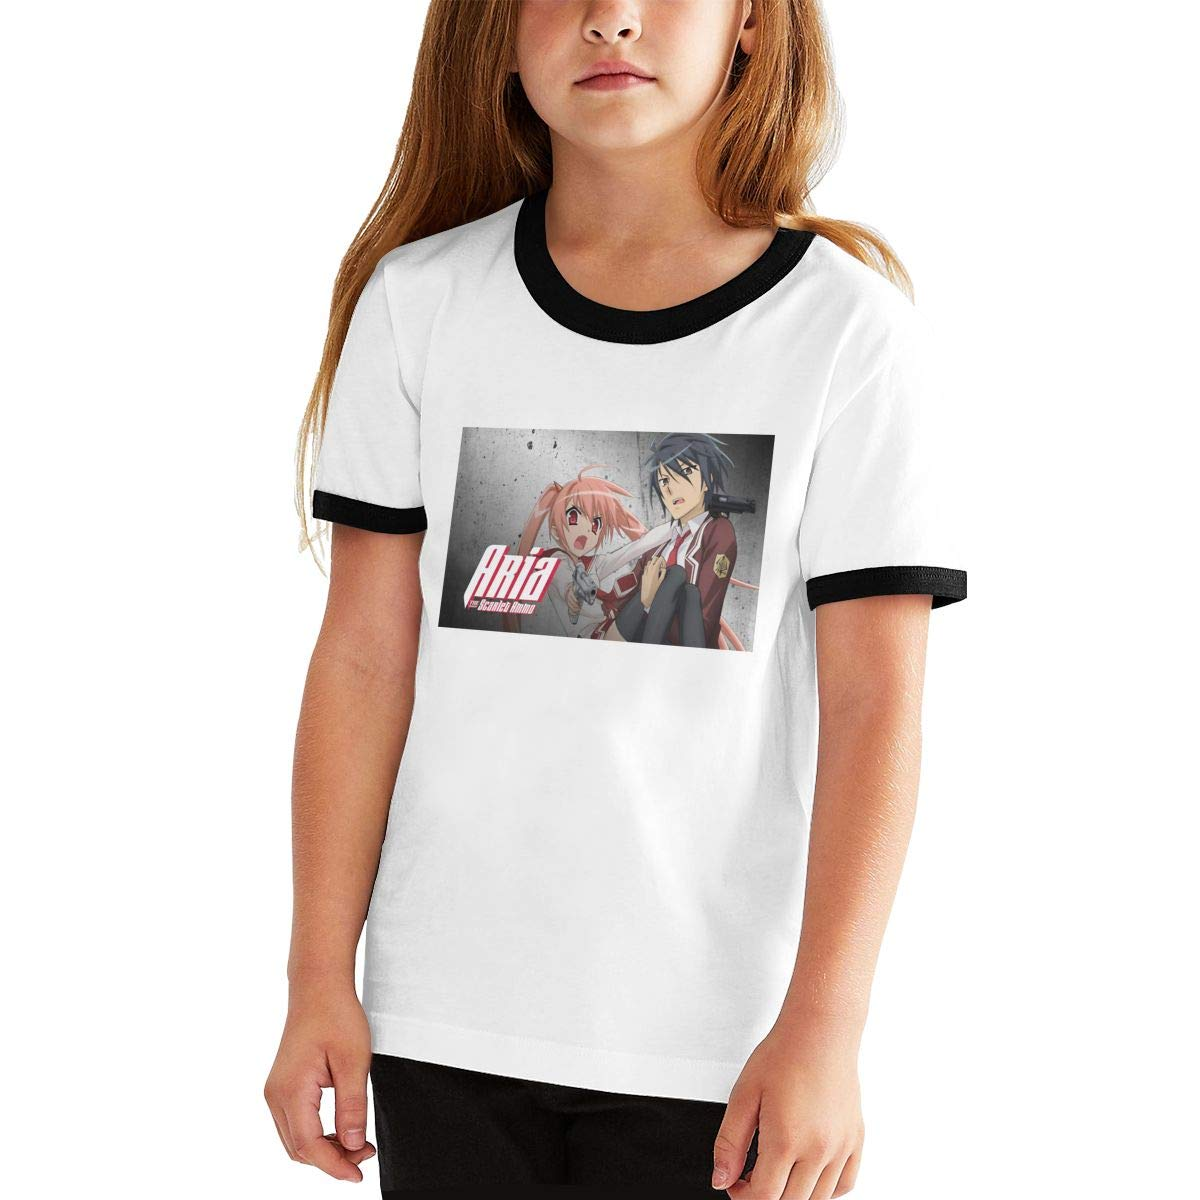 DNWYALL-Tee Young Boys and Girls Teen-Agers Funny Two-Toned T-Shirt Black